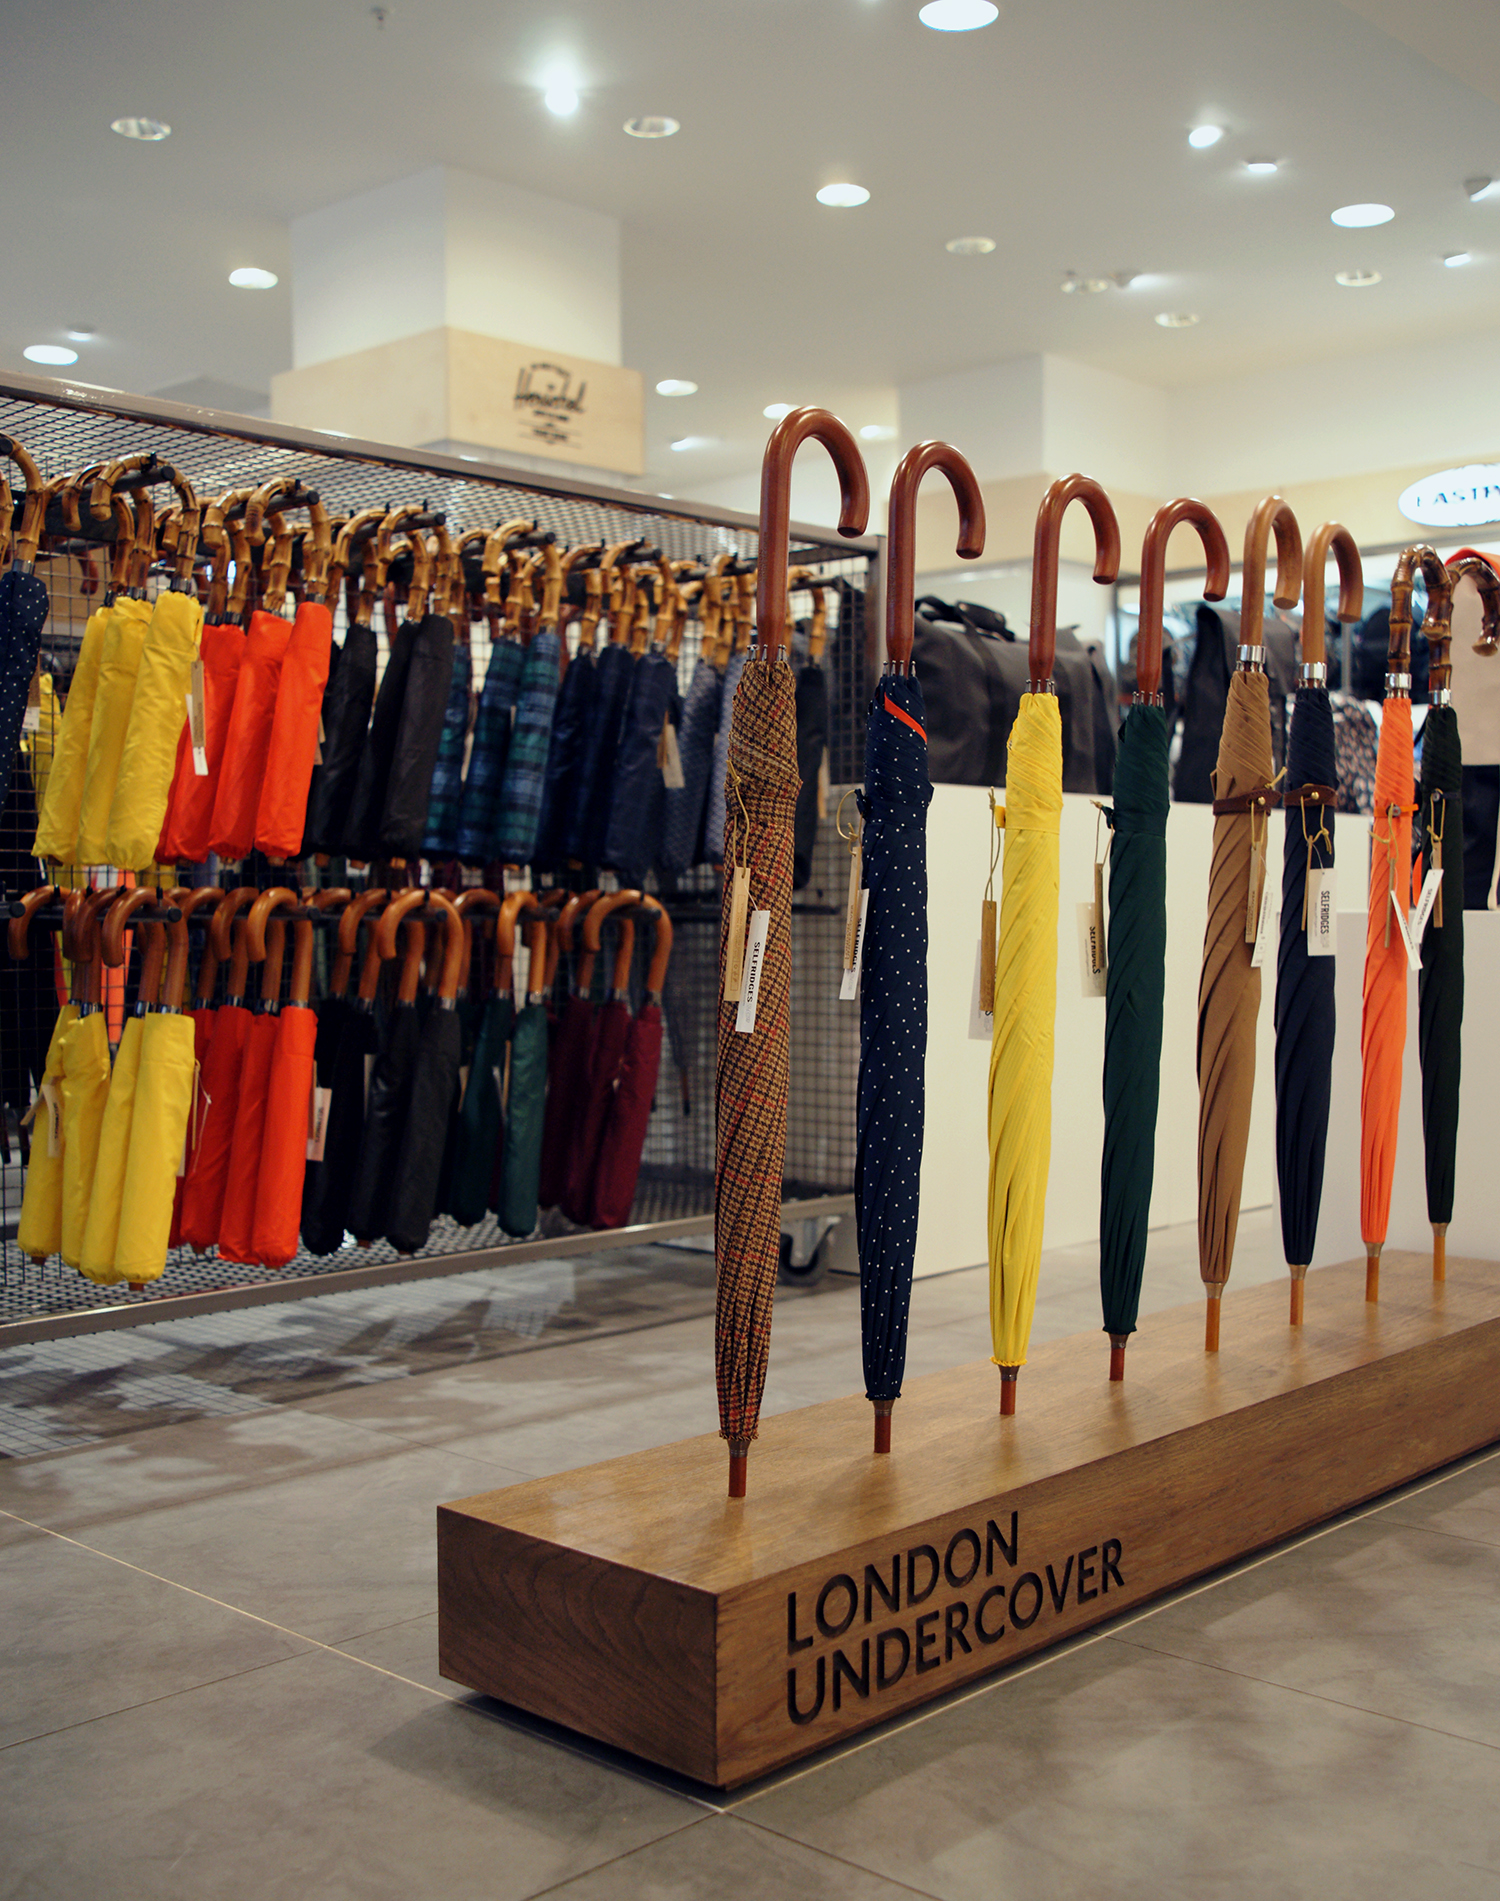 SELFRIDGES-LONDON-UNDERCOVER-APRIL-SHOWERS-POP-UP-01